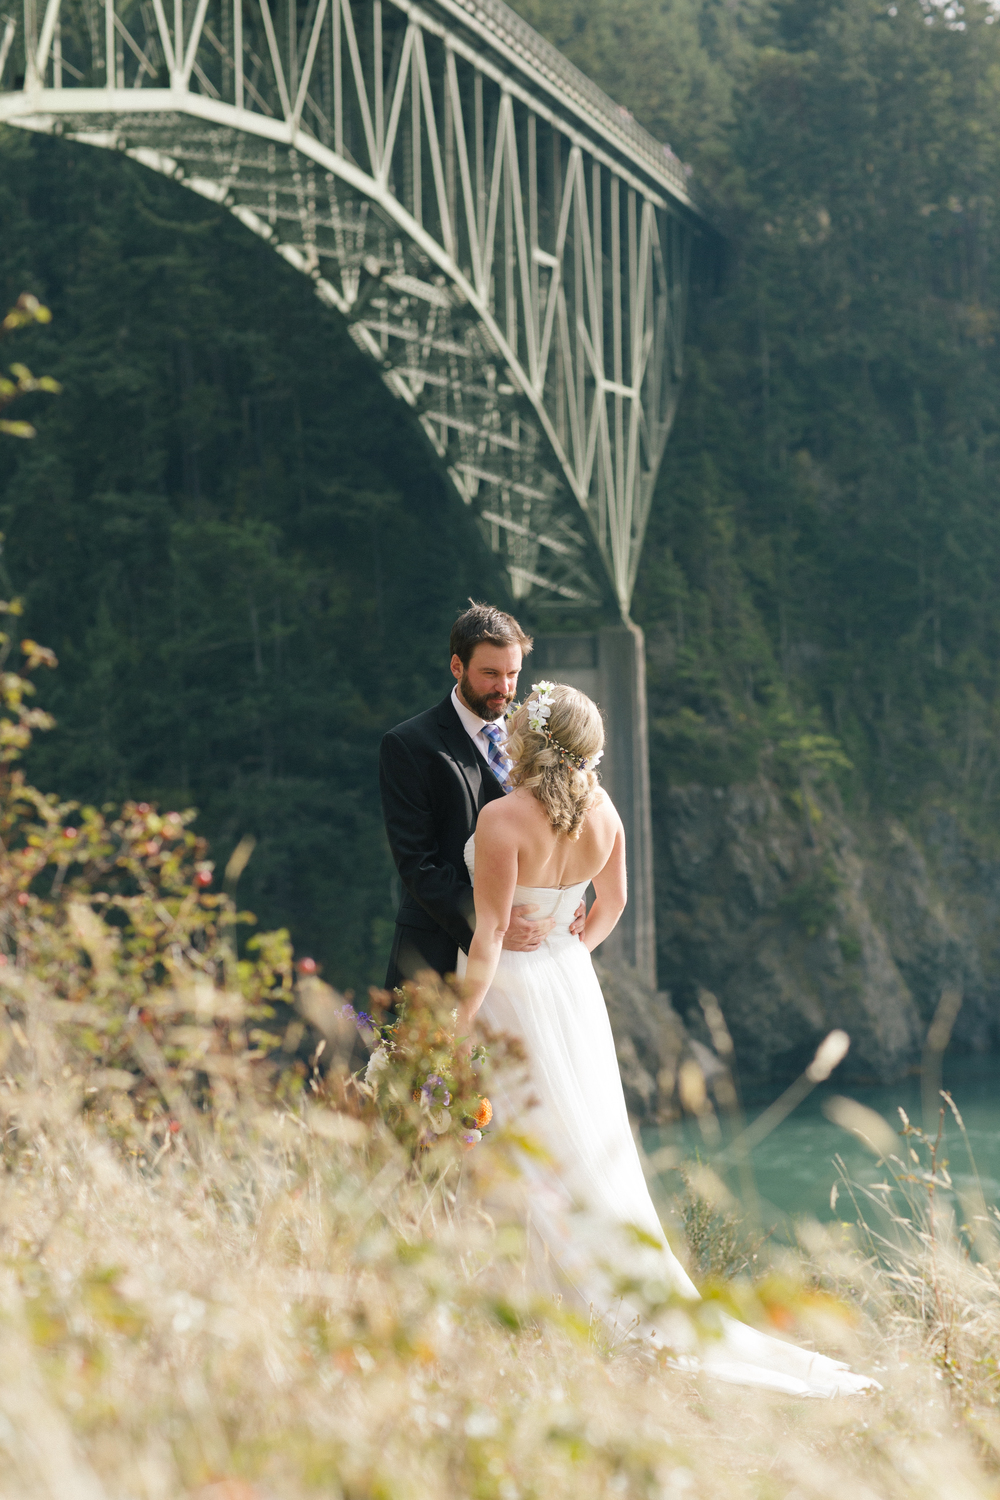 Brianna&Andy Deception Pass-37.jpg